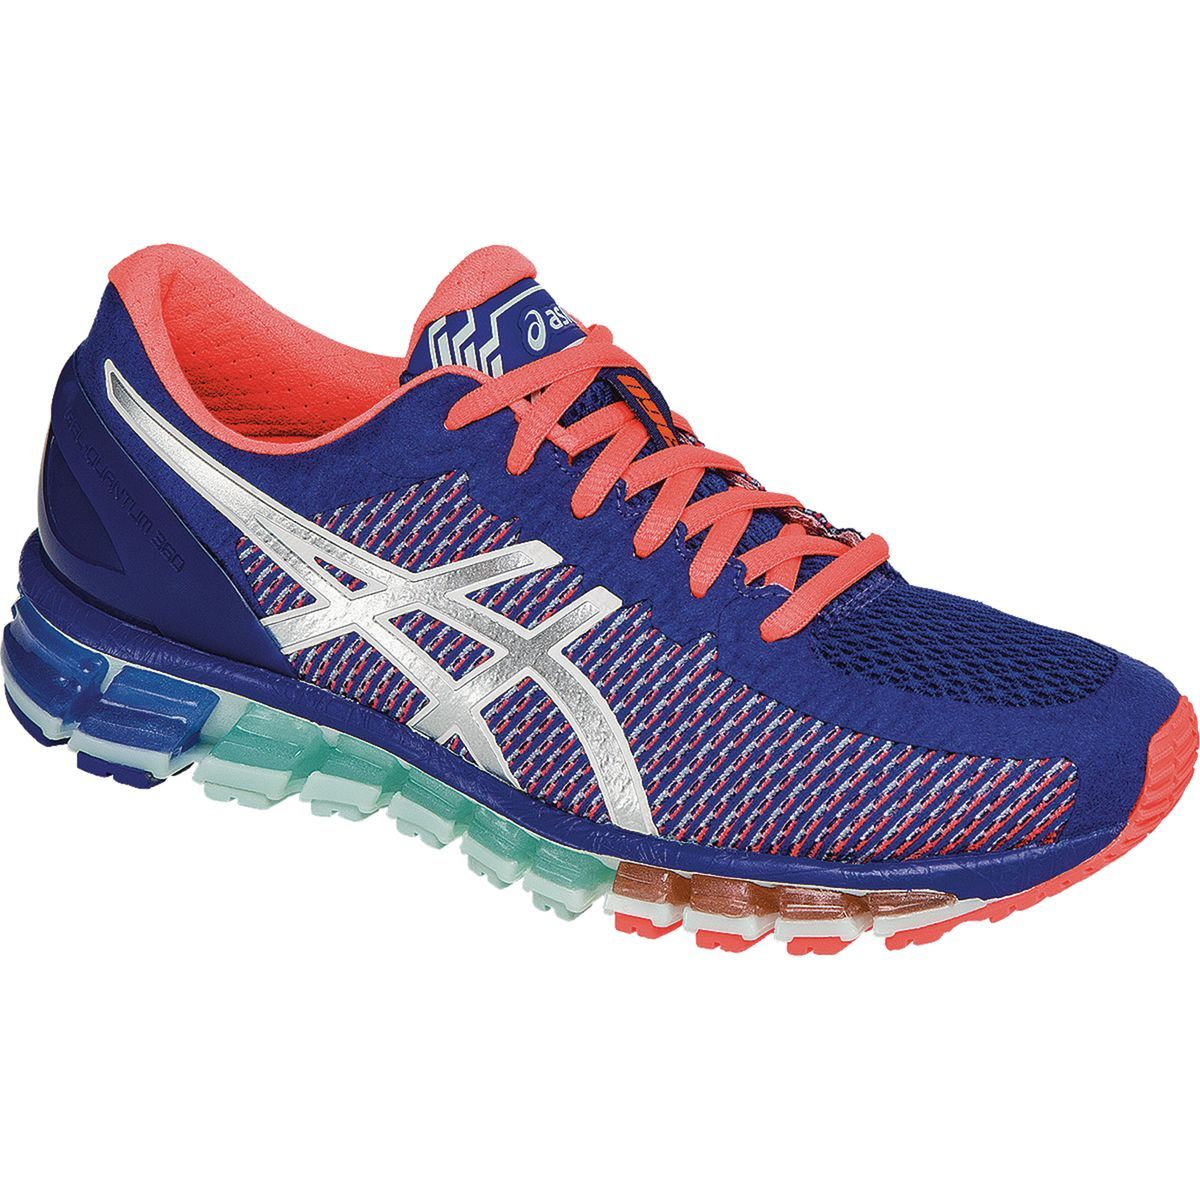 nouvelle arrivee a0a34 ae9cf Asics Gel-Quantum 360 2 Running Shoe Asics Blue/White/Flash ...